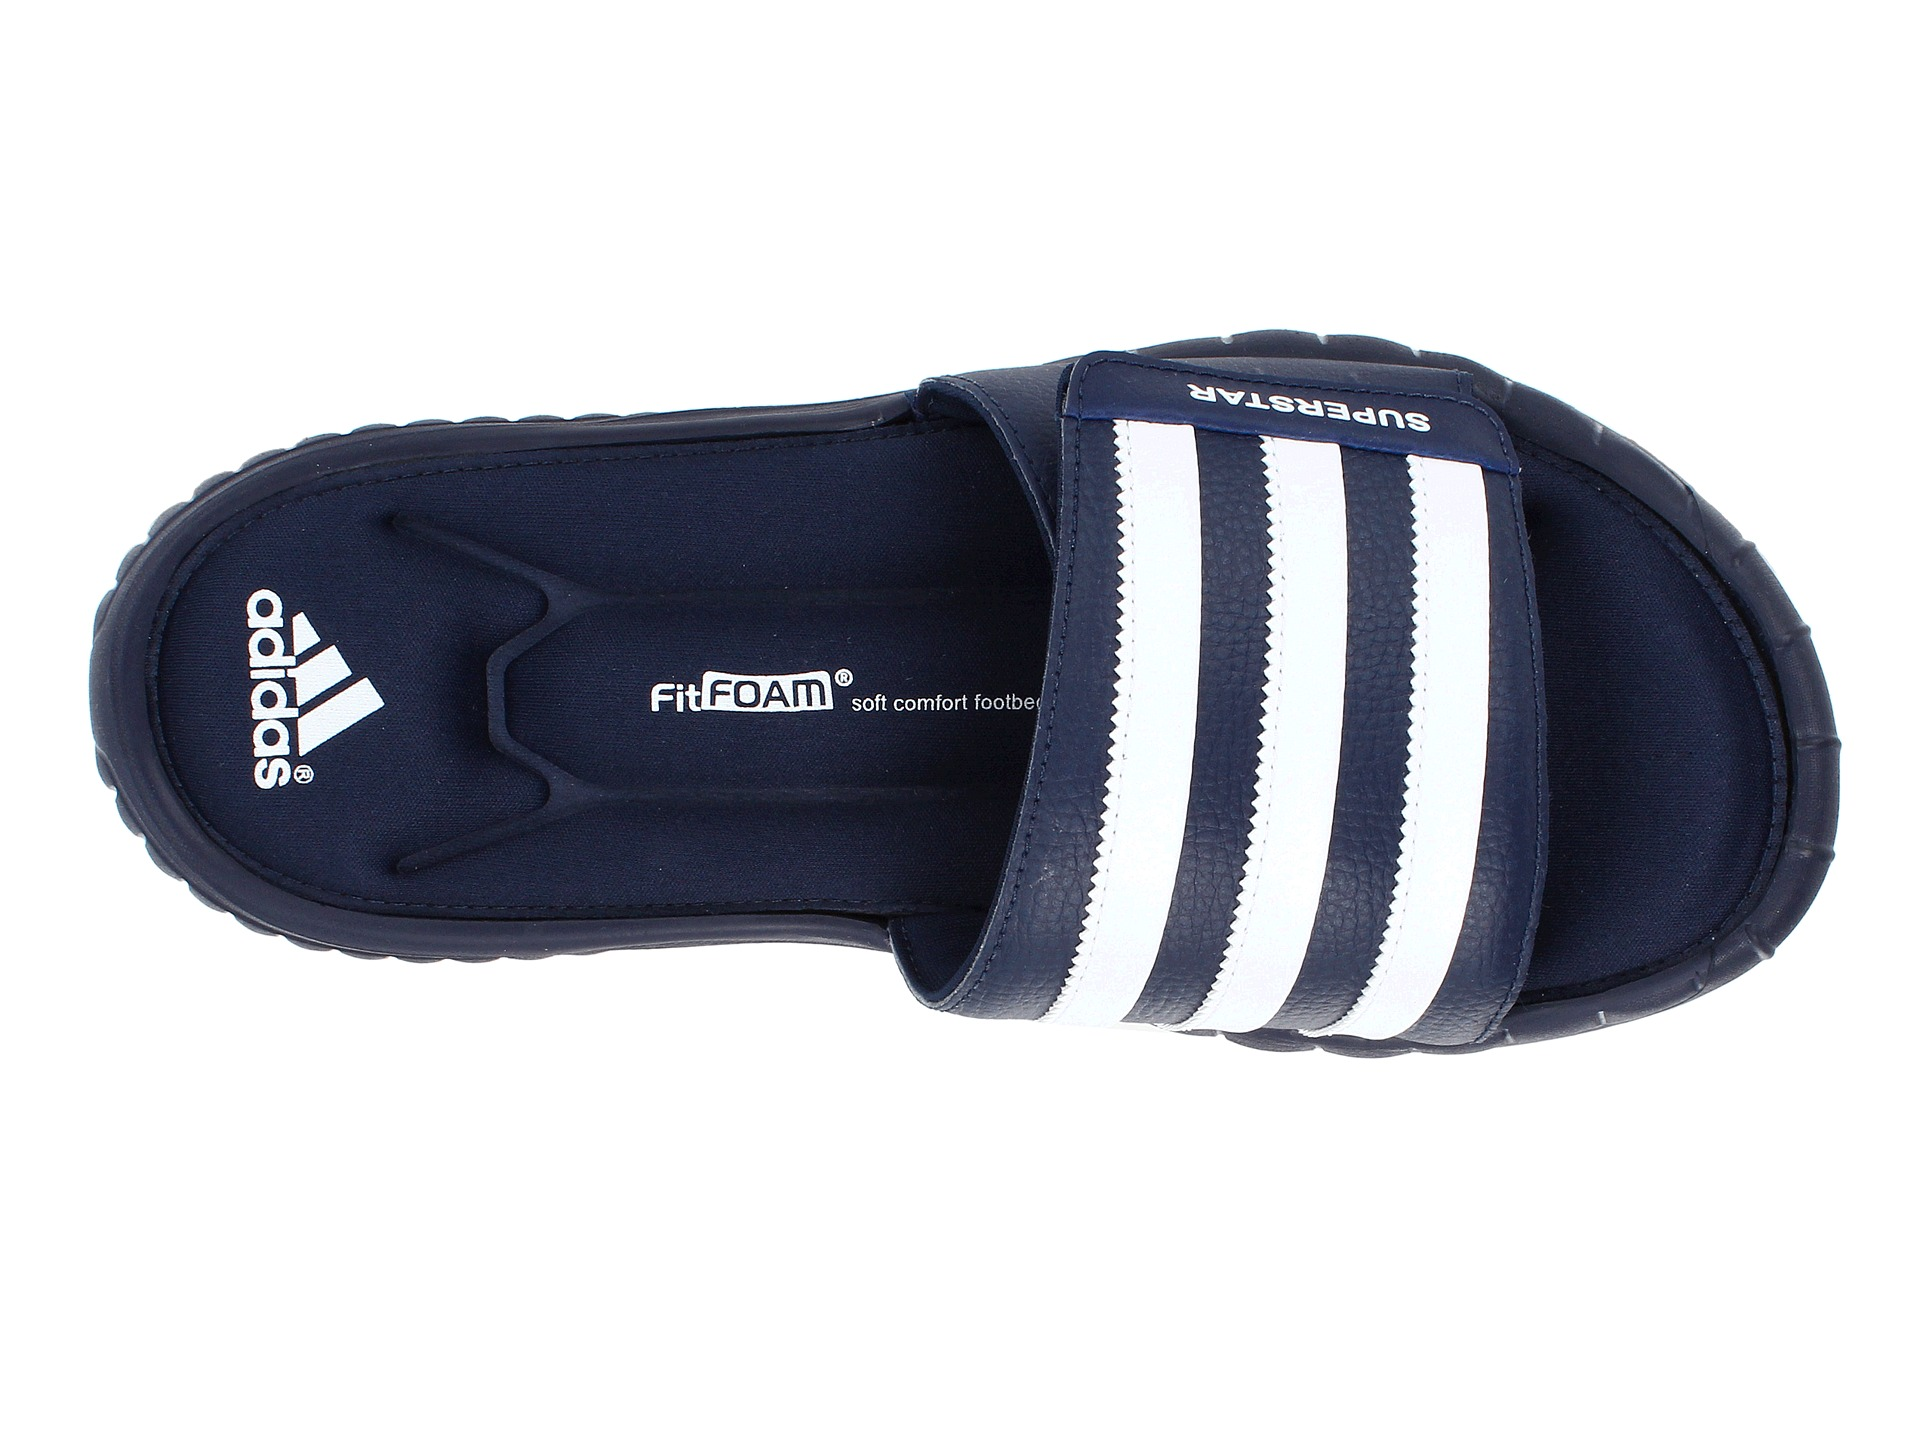 detailed look 85fad 33dc9 adidas fitfoam slides